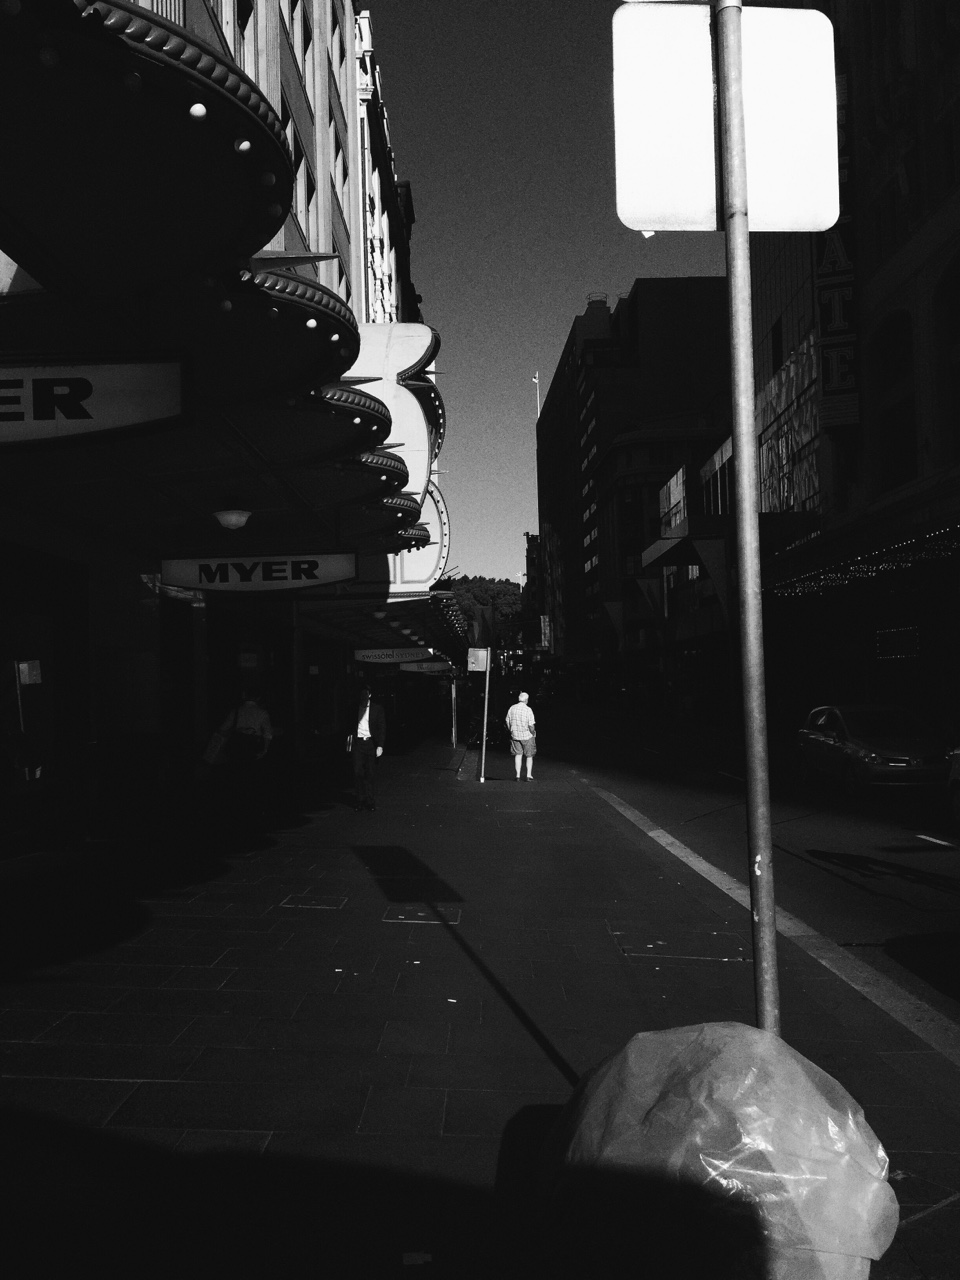 Evening Sunlight - Market St Sydney